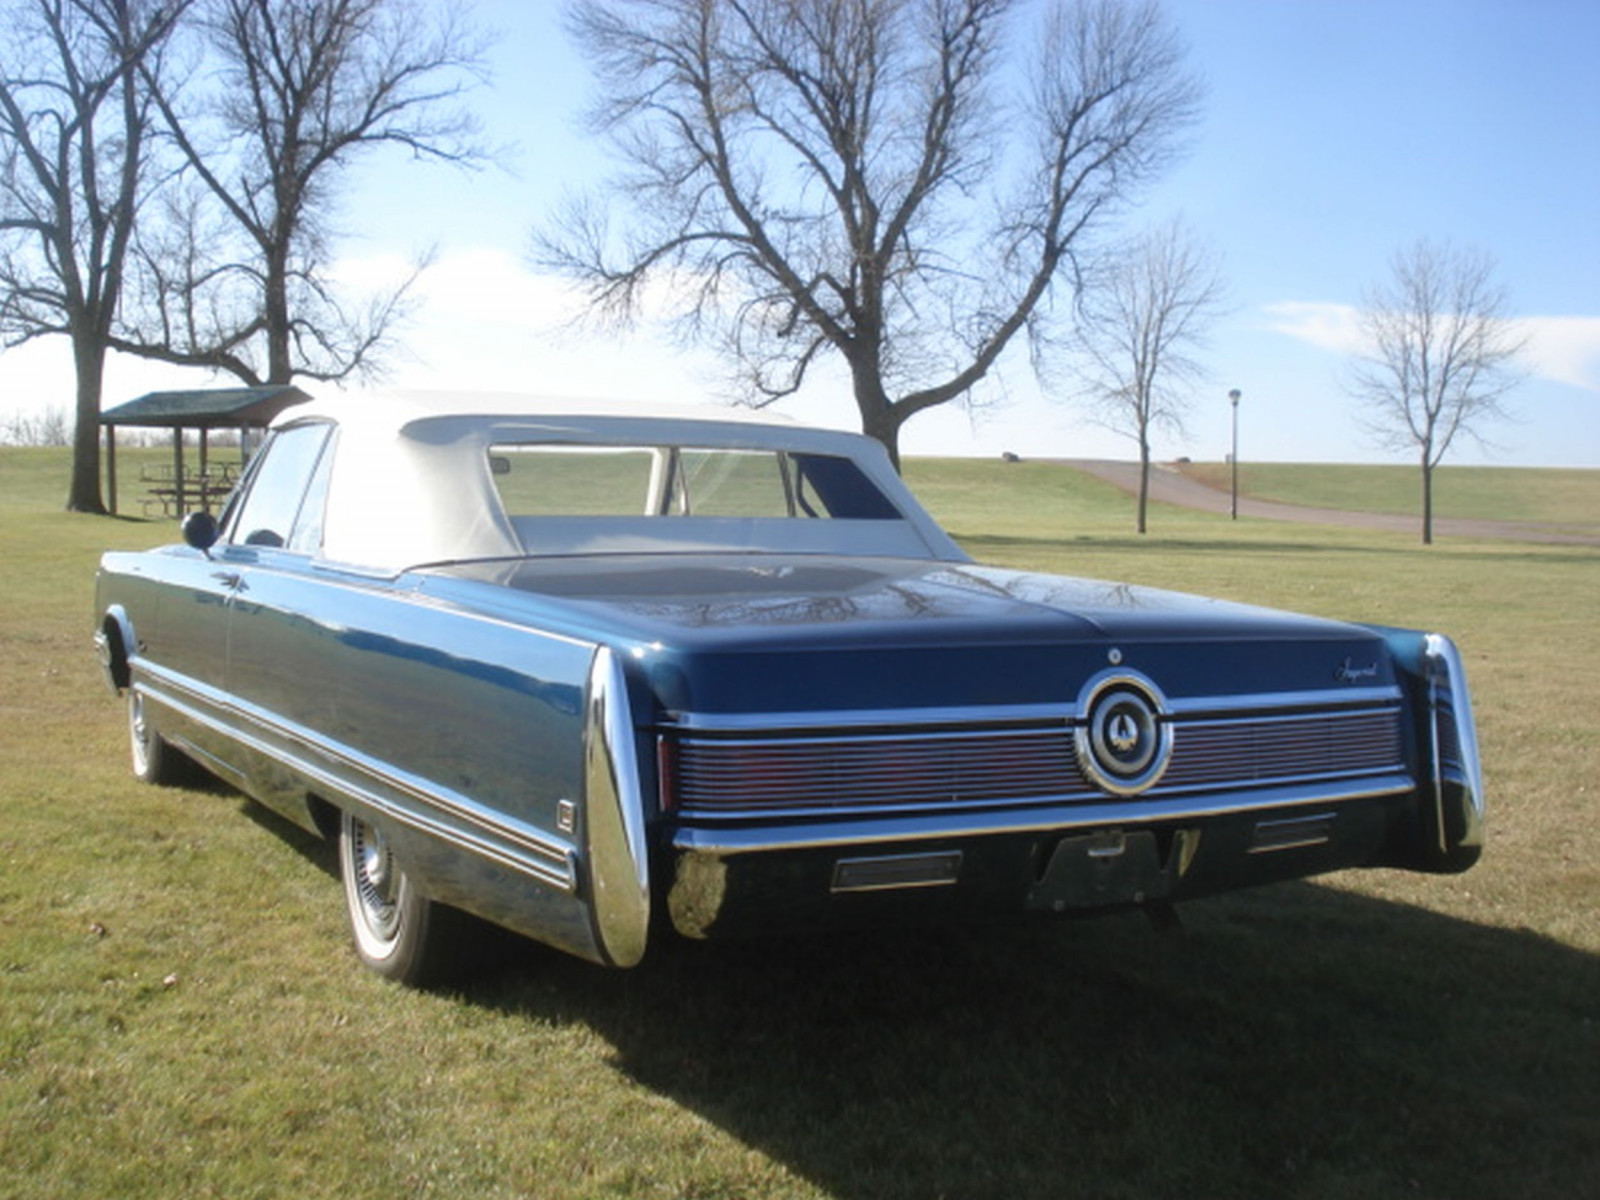 1968 Chrysler Imperial Crown Convertible - Image 11